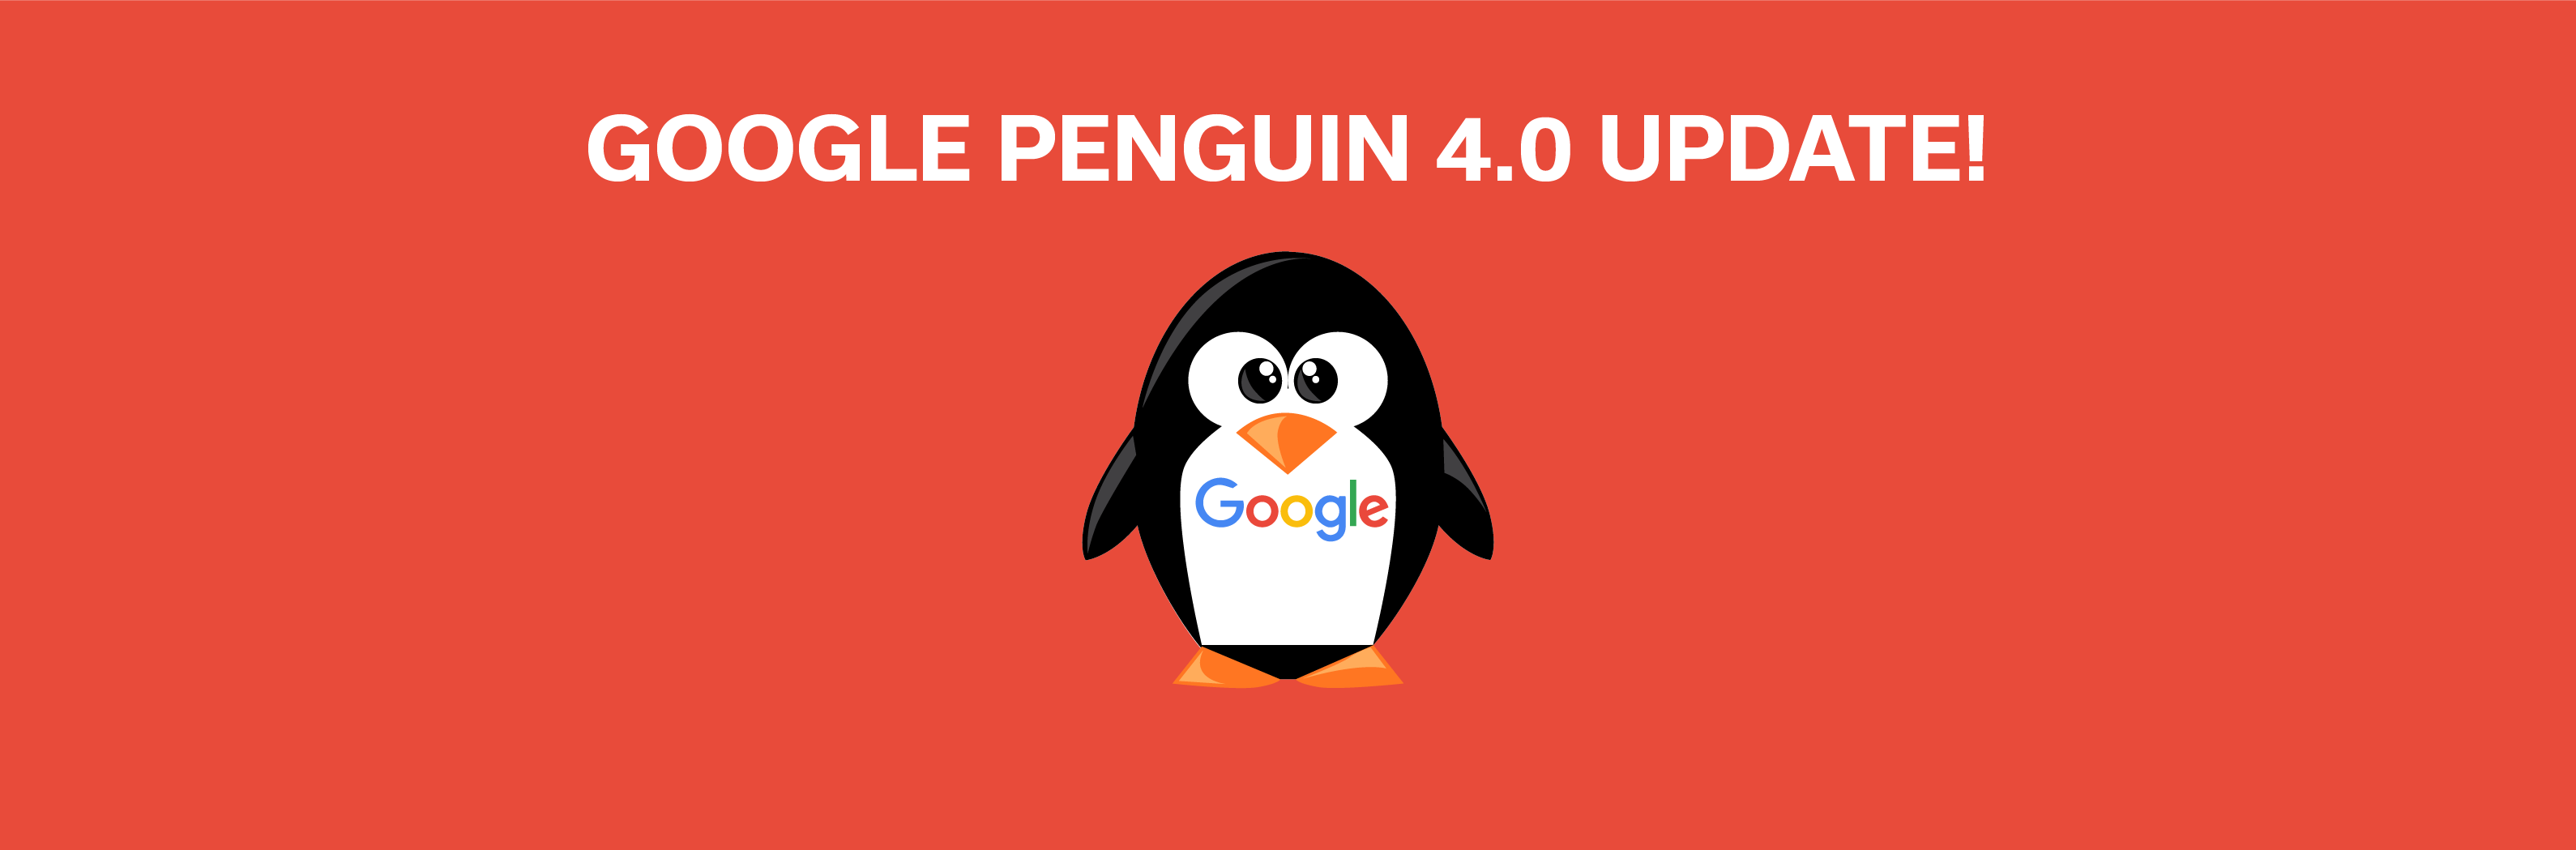 Google Penguin Update 2016